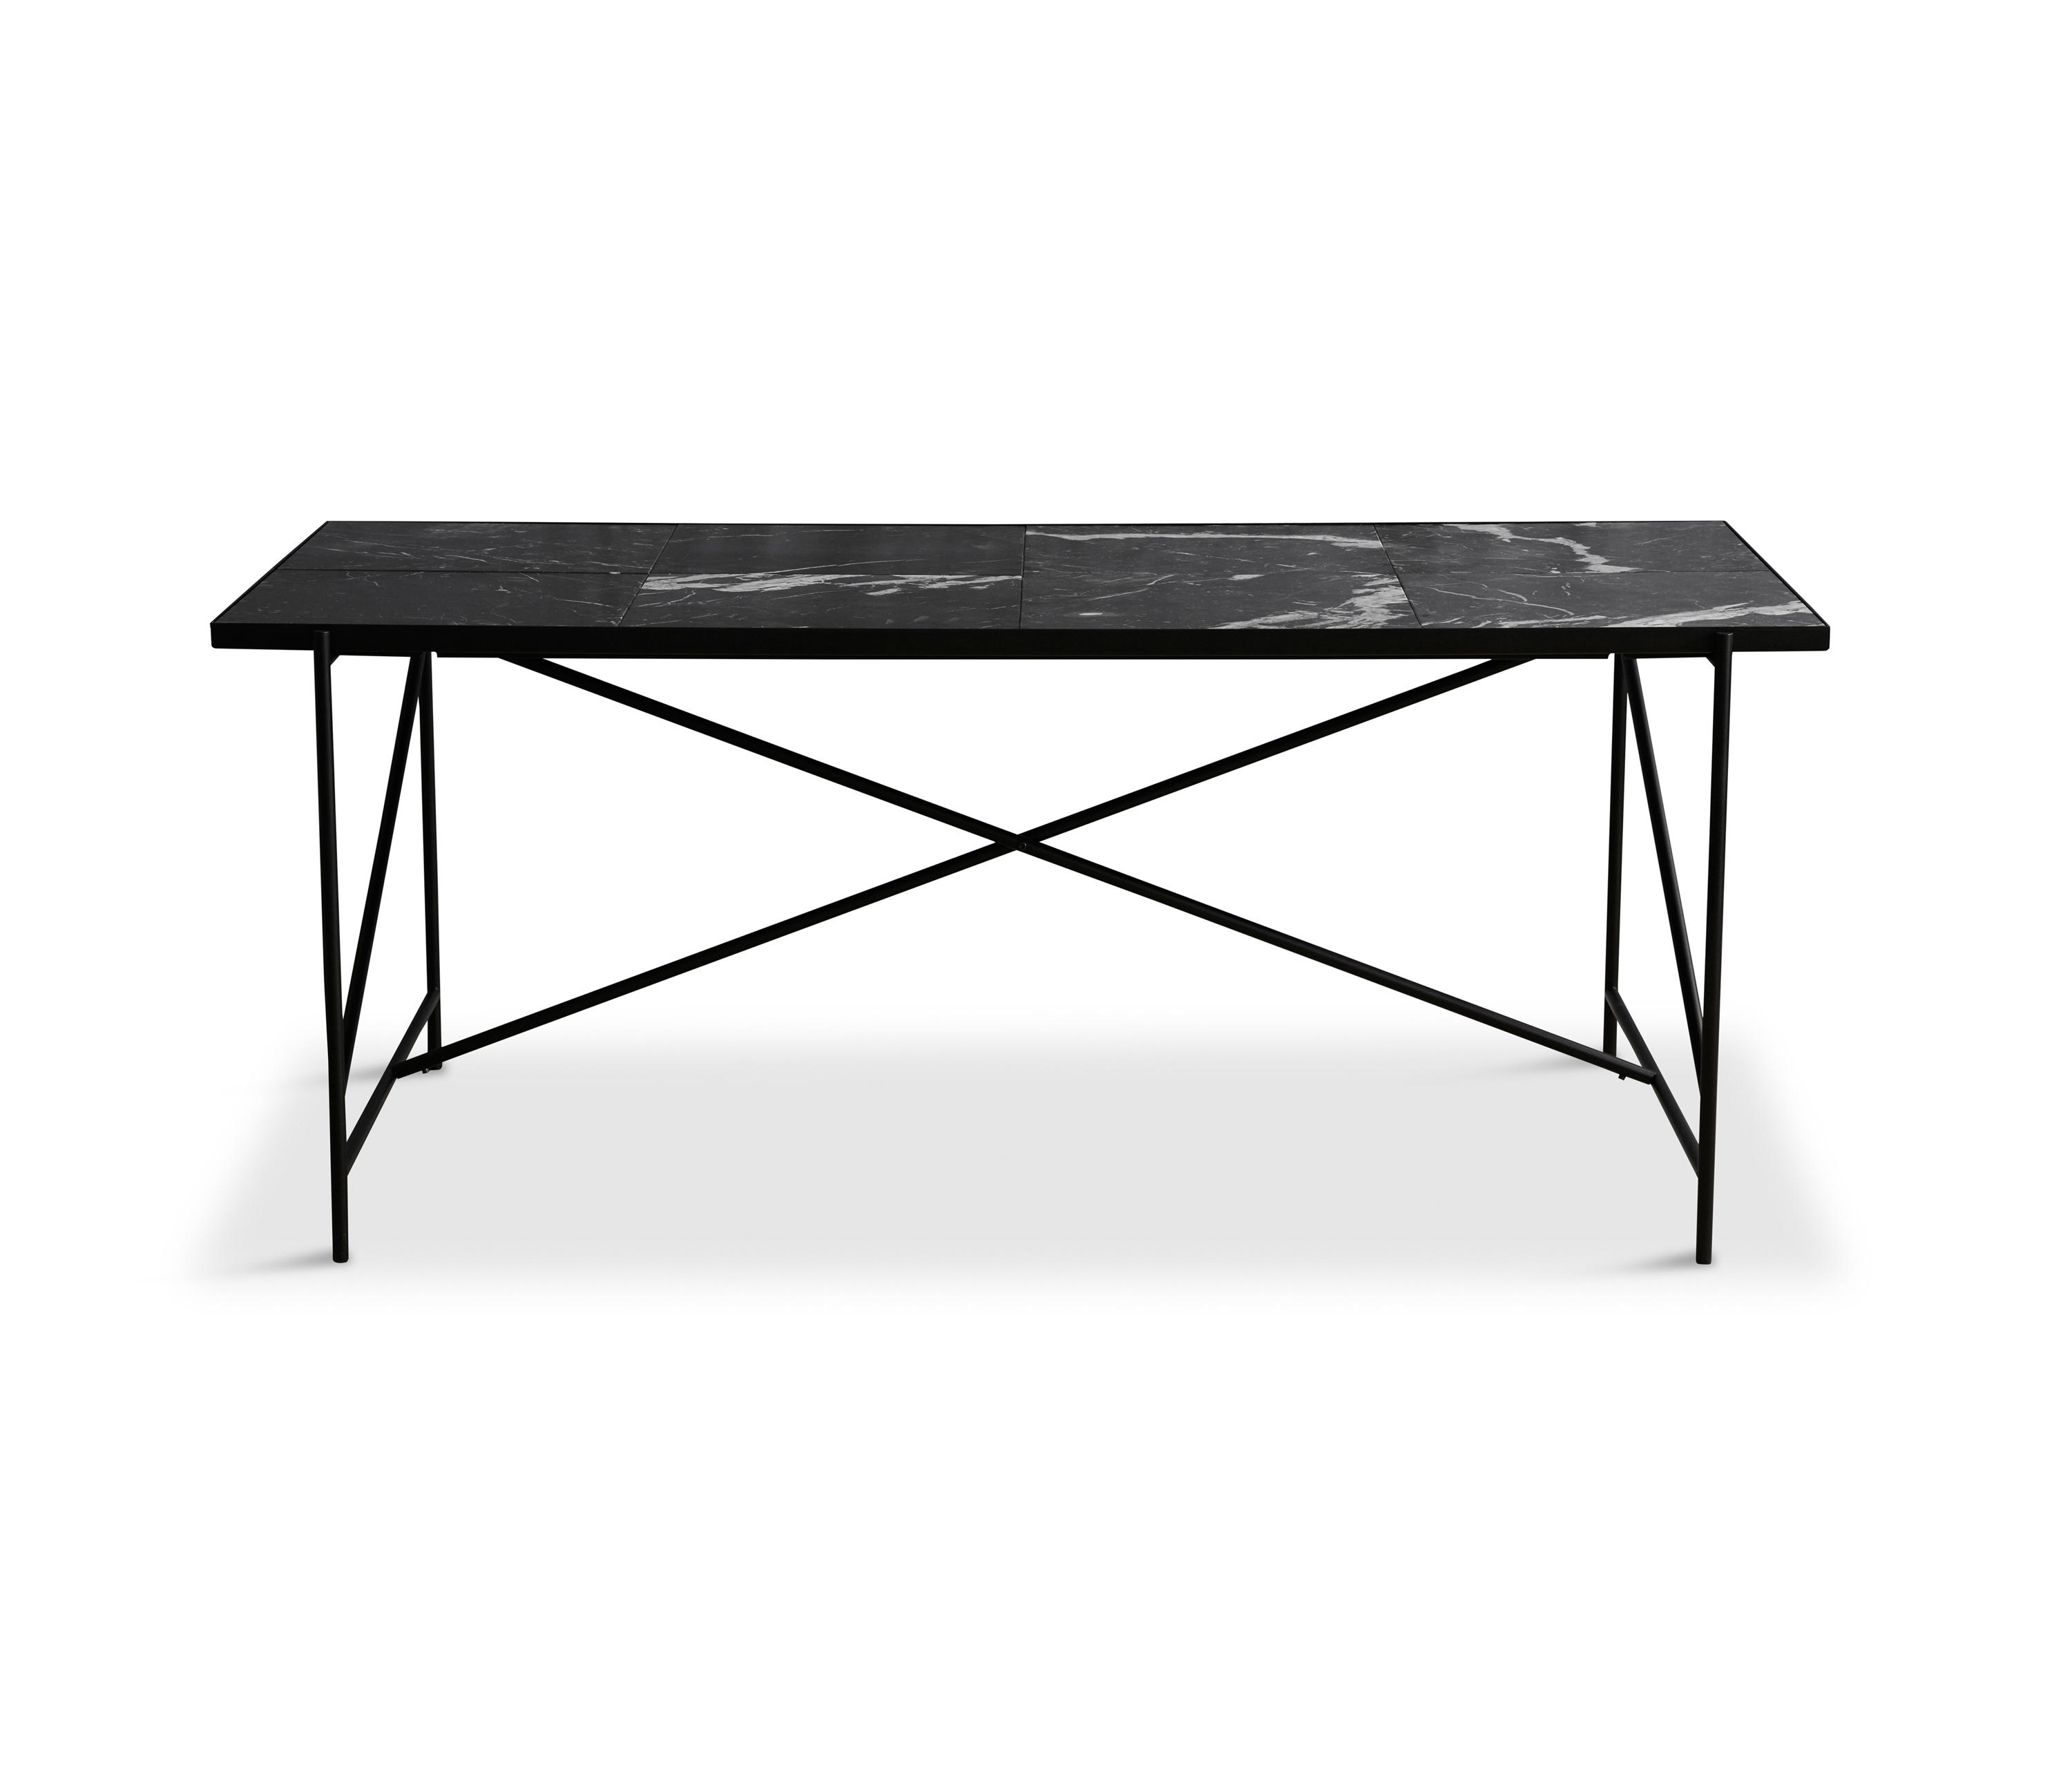 DINING TABLE 185 BLACK BLACK MARBLE Dining tables from